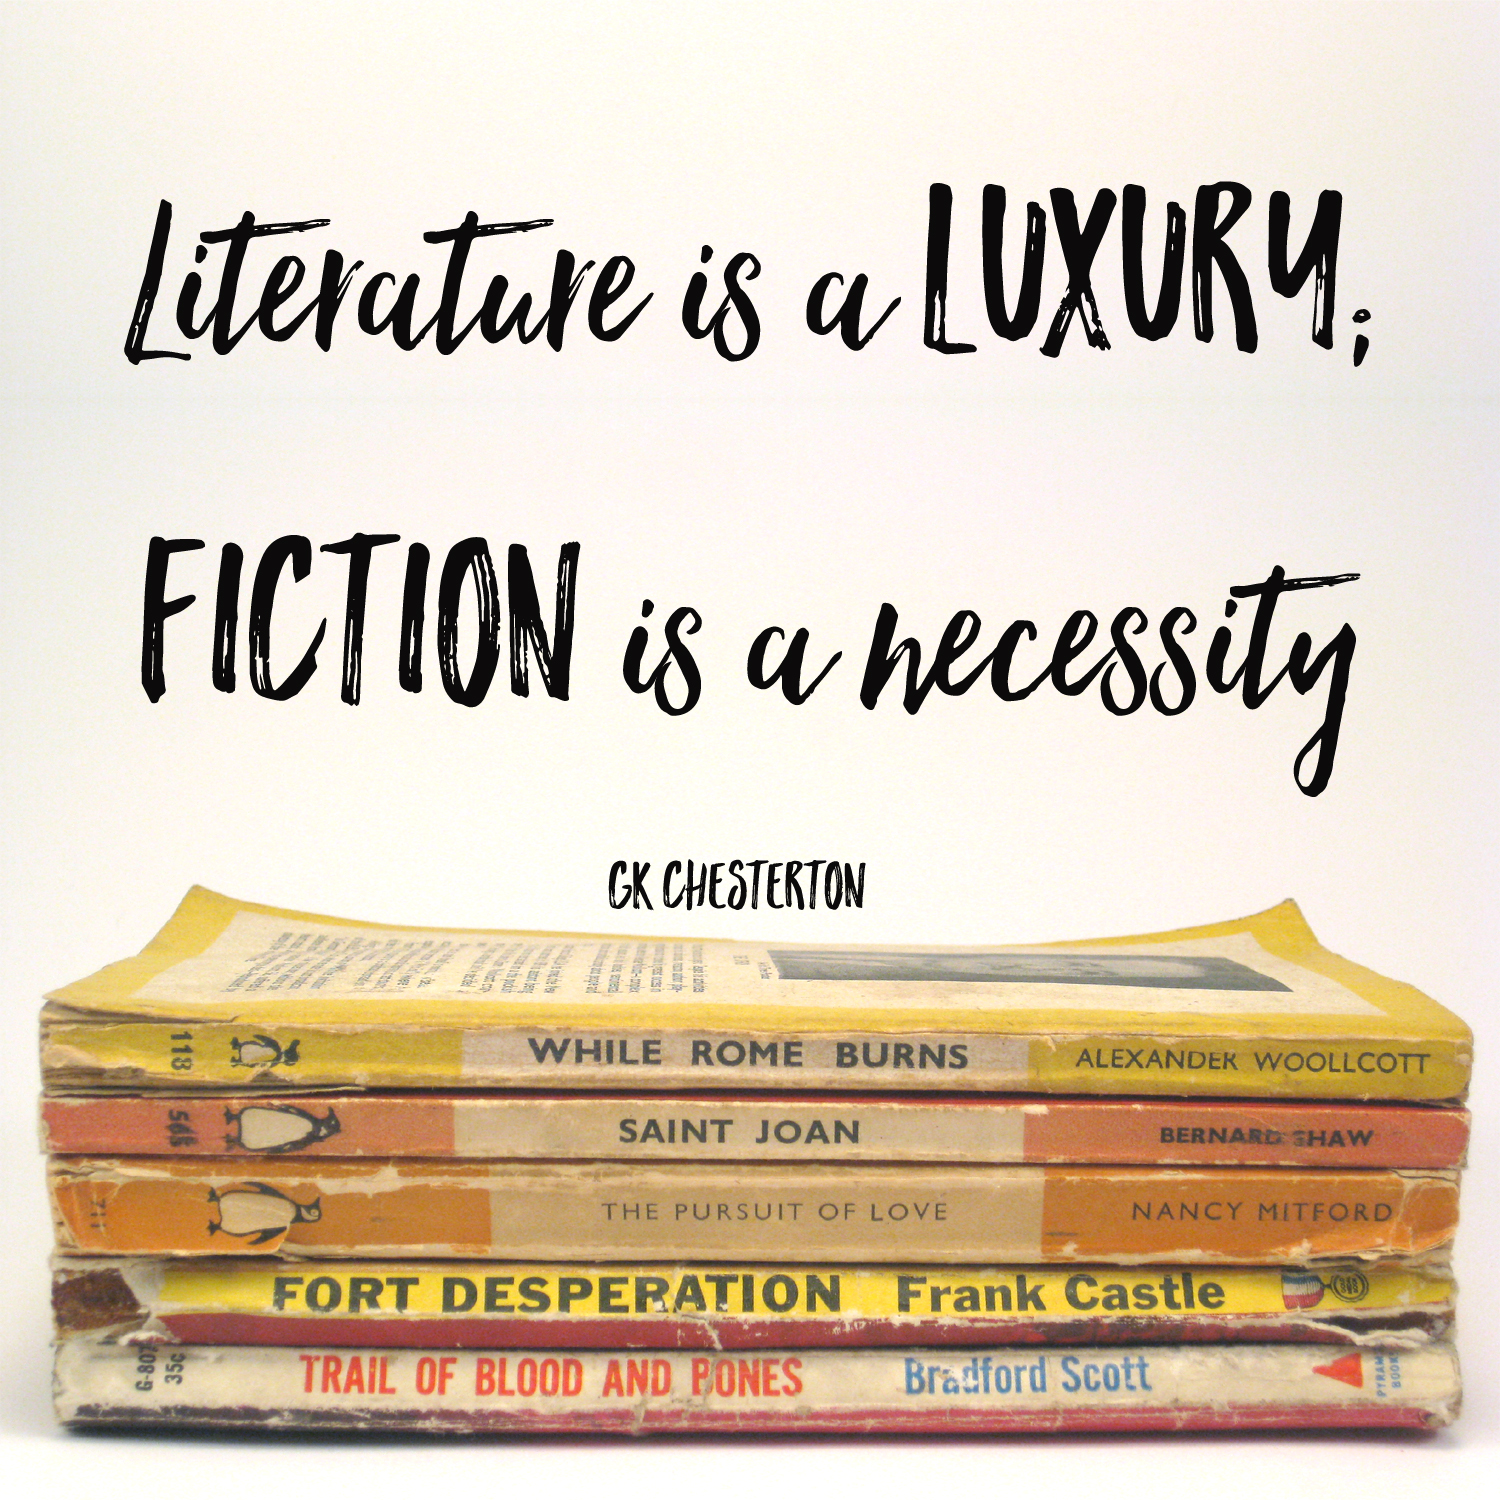 literature is a luxury fiction is a necessity quote by GK Chesterton 1901 copy